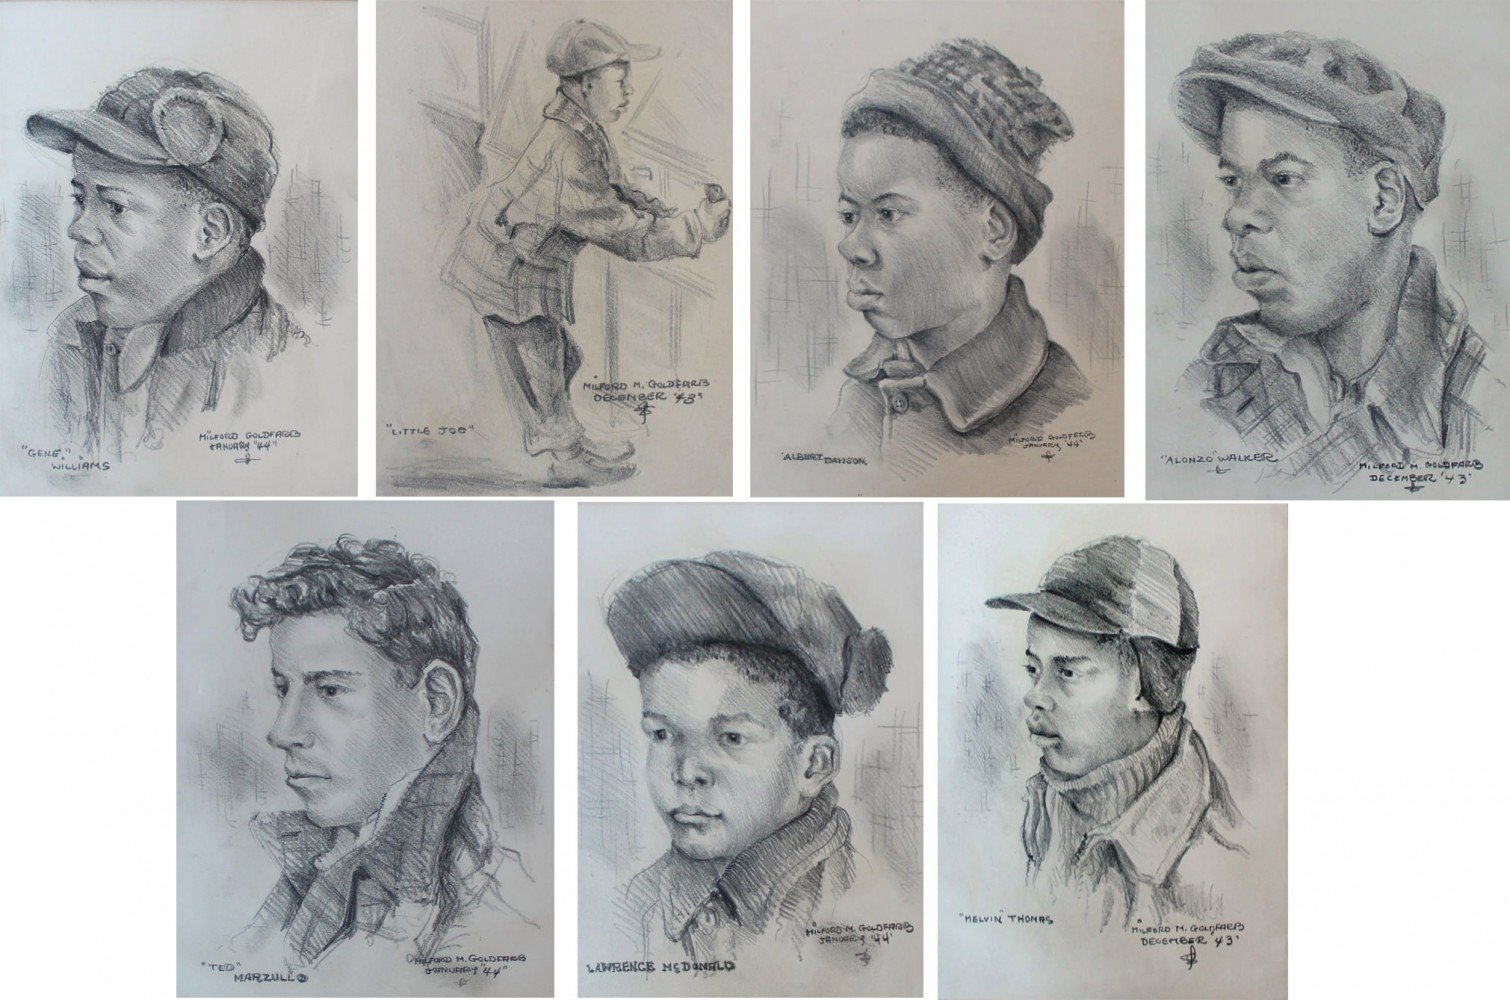 Lot of 7 Portrait Drawings by Milford Goldfarb